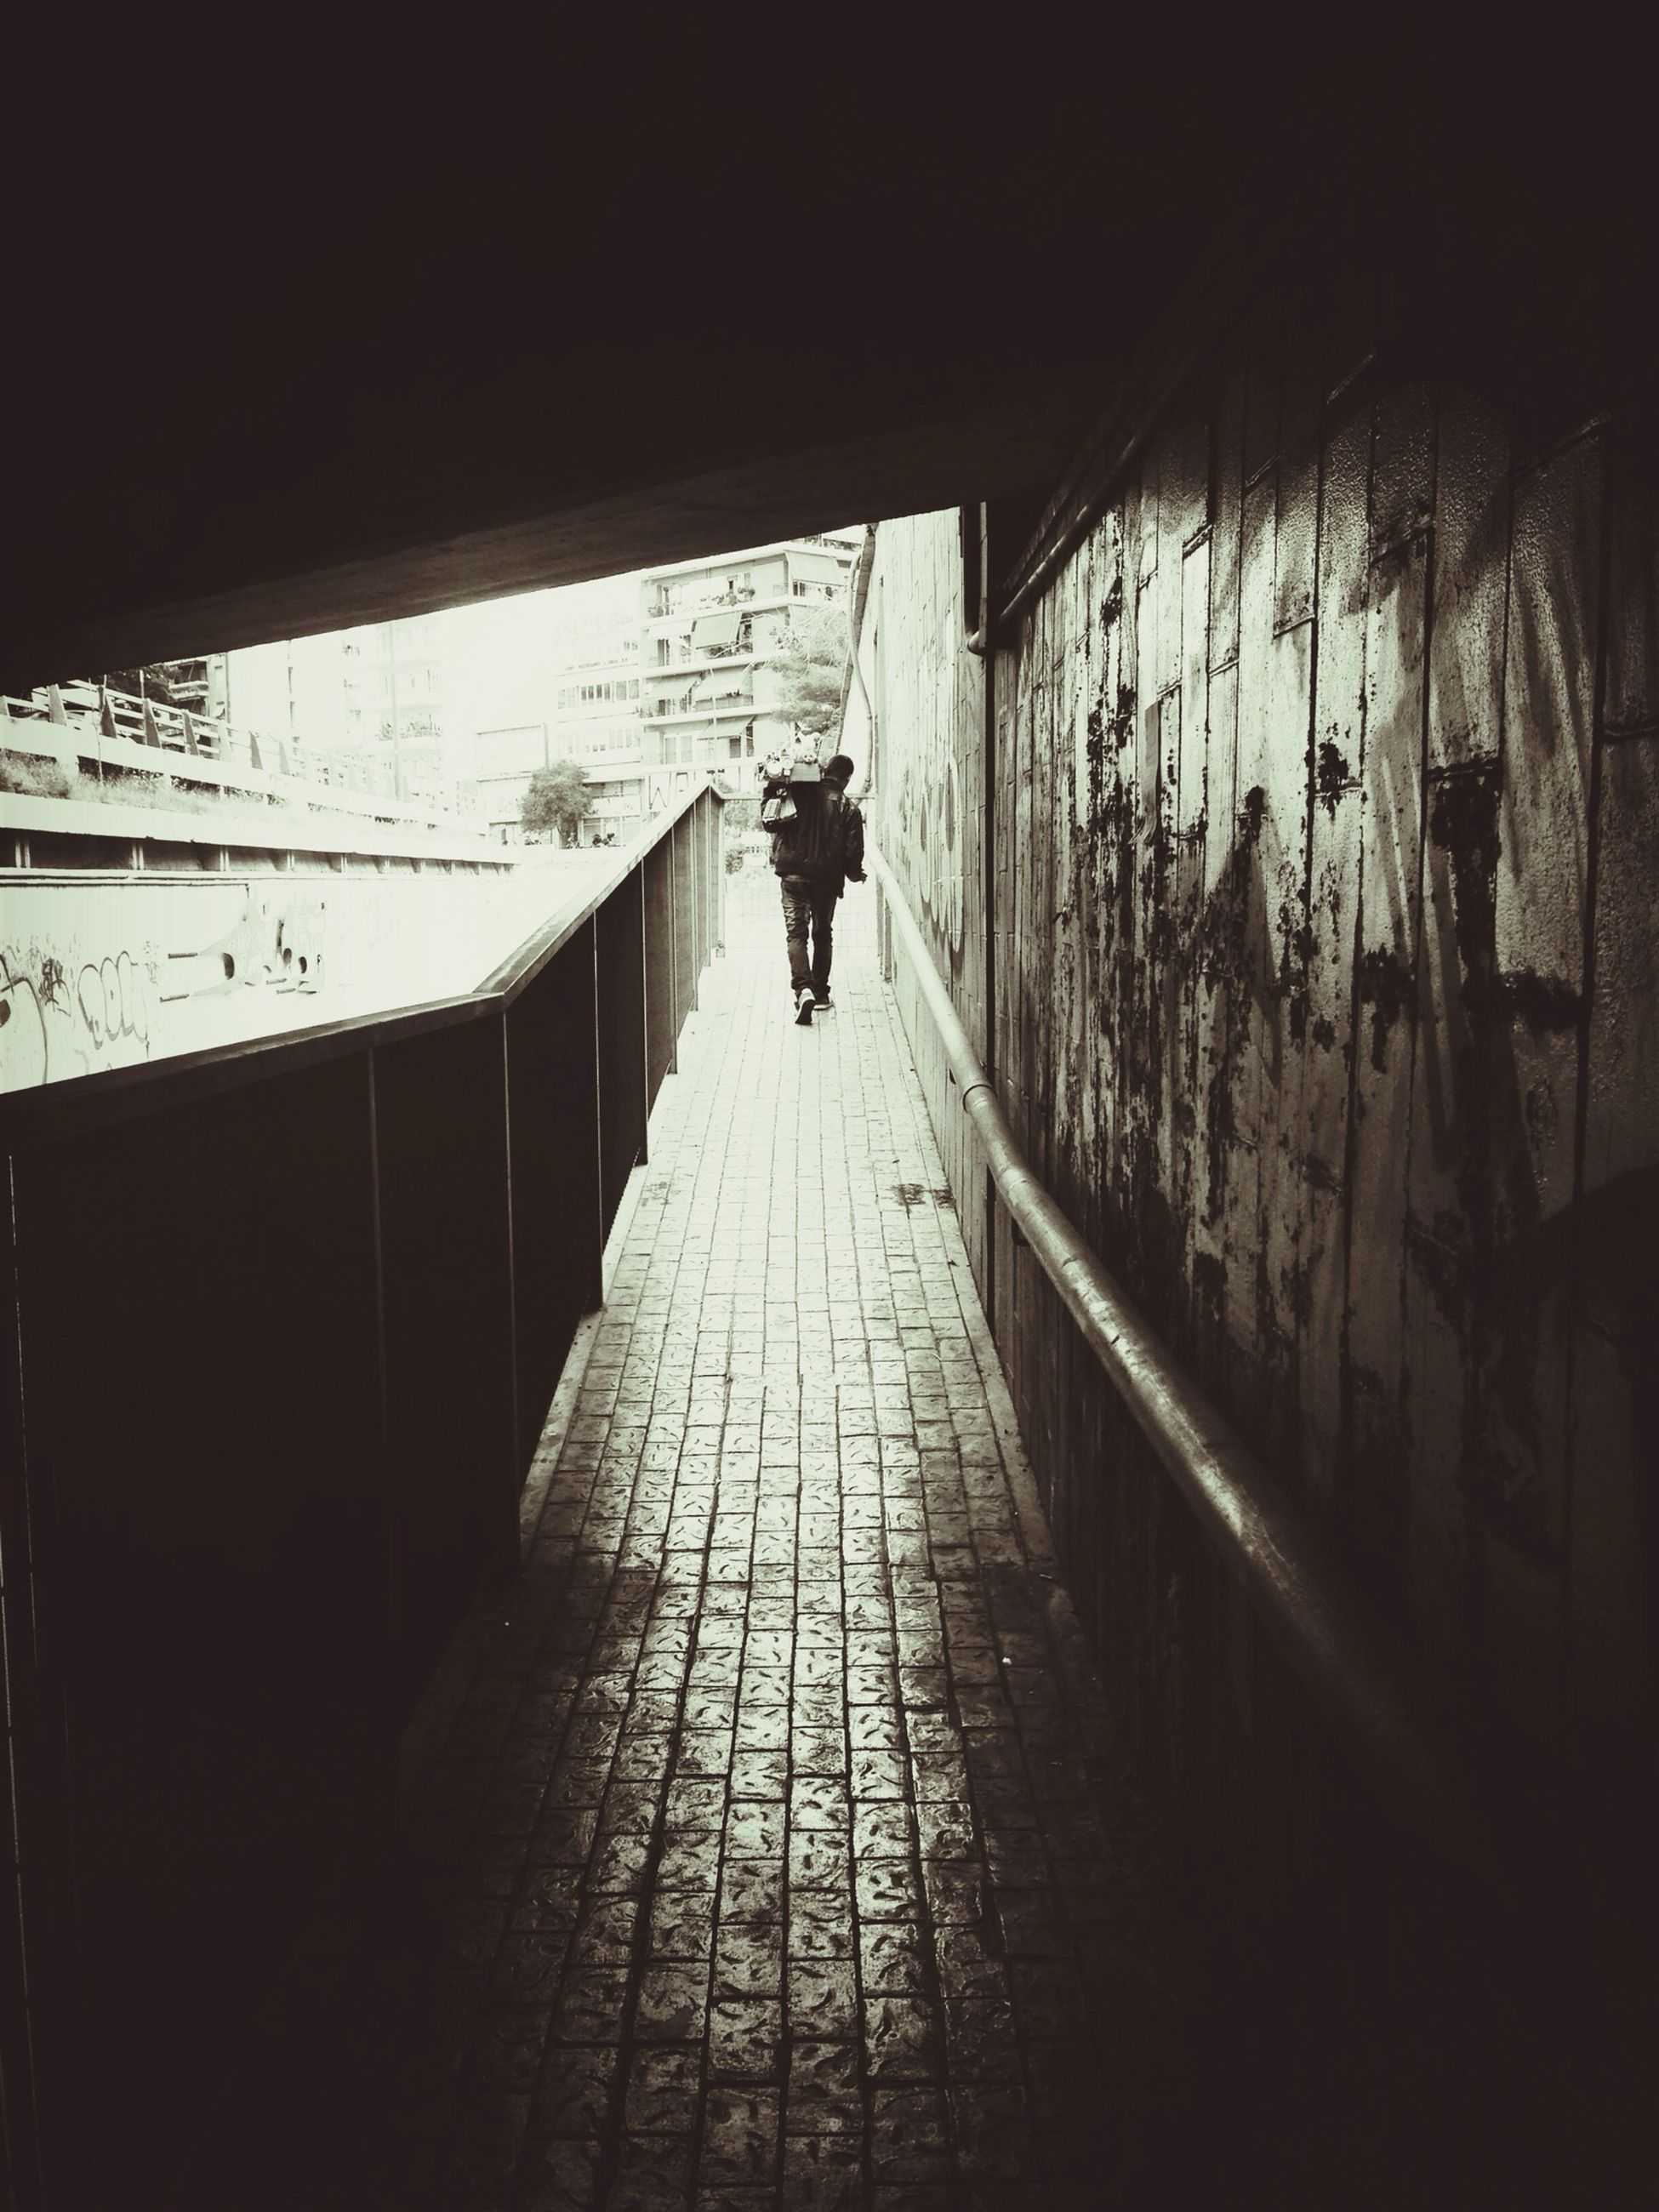 full length, walking, the way forward, rear view, indoors, lifestyles, men, silhouette, architecture, built structure, diminishing perspective, tunnel, leisure activity, corridor, person, narrow, wall - building feature